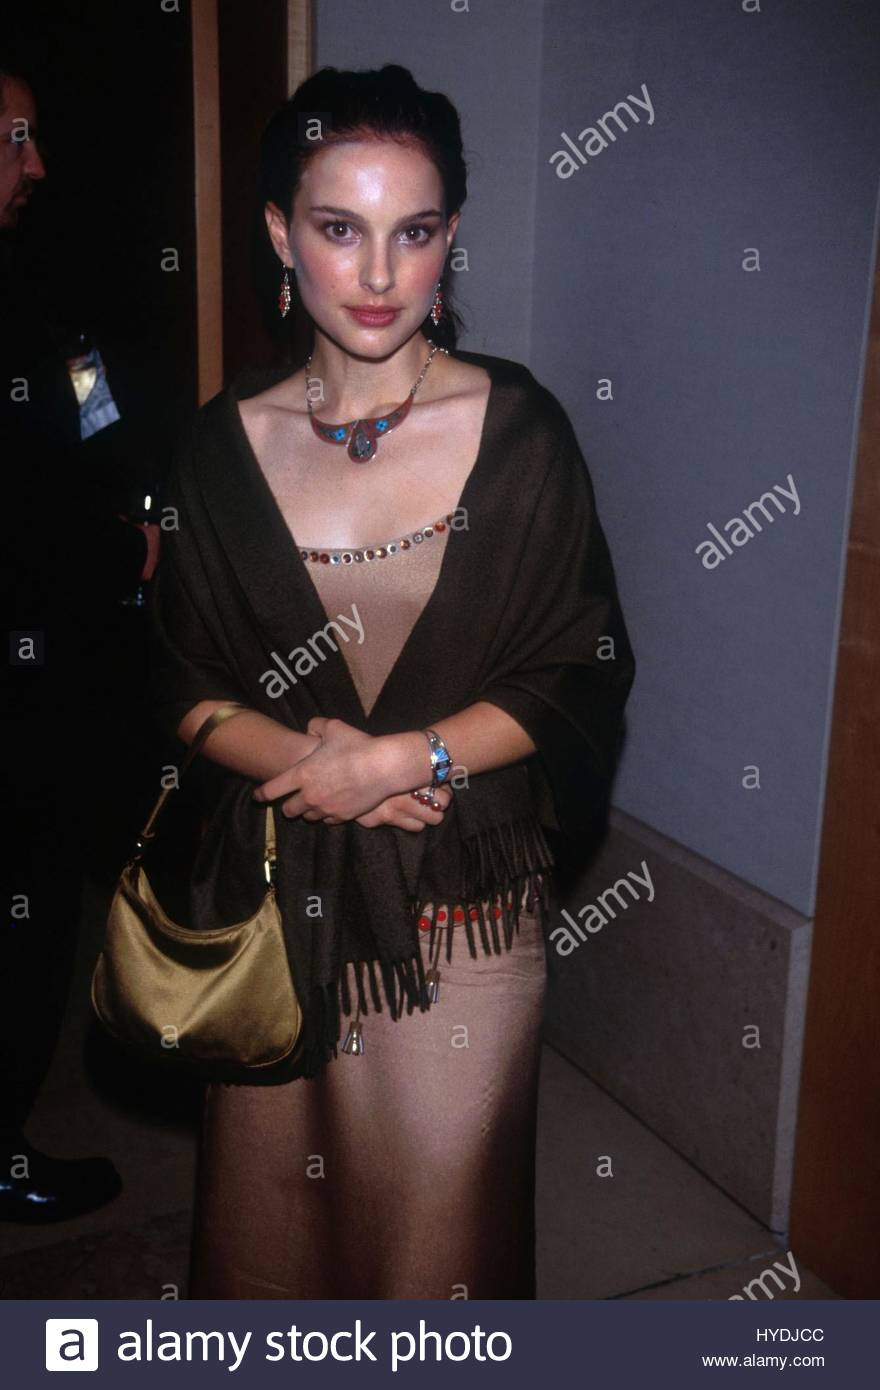 Natalie Portman 1999 MTV Video Music Awards After Party Four Seasons Hotel NYC 9